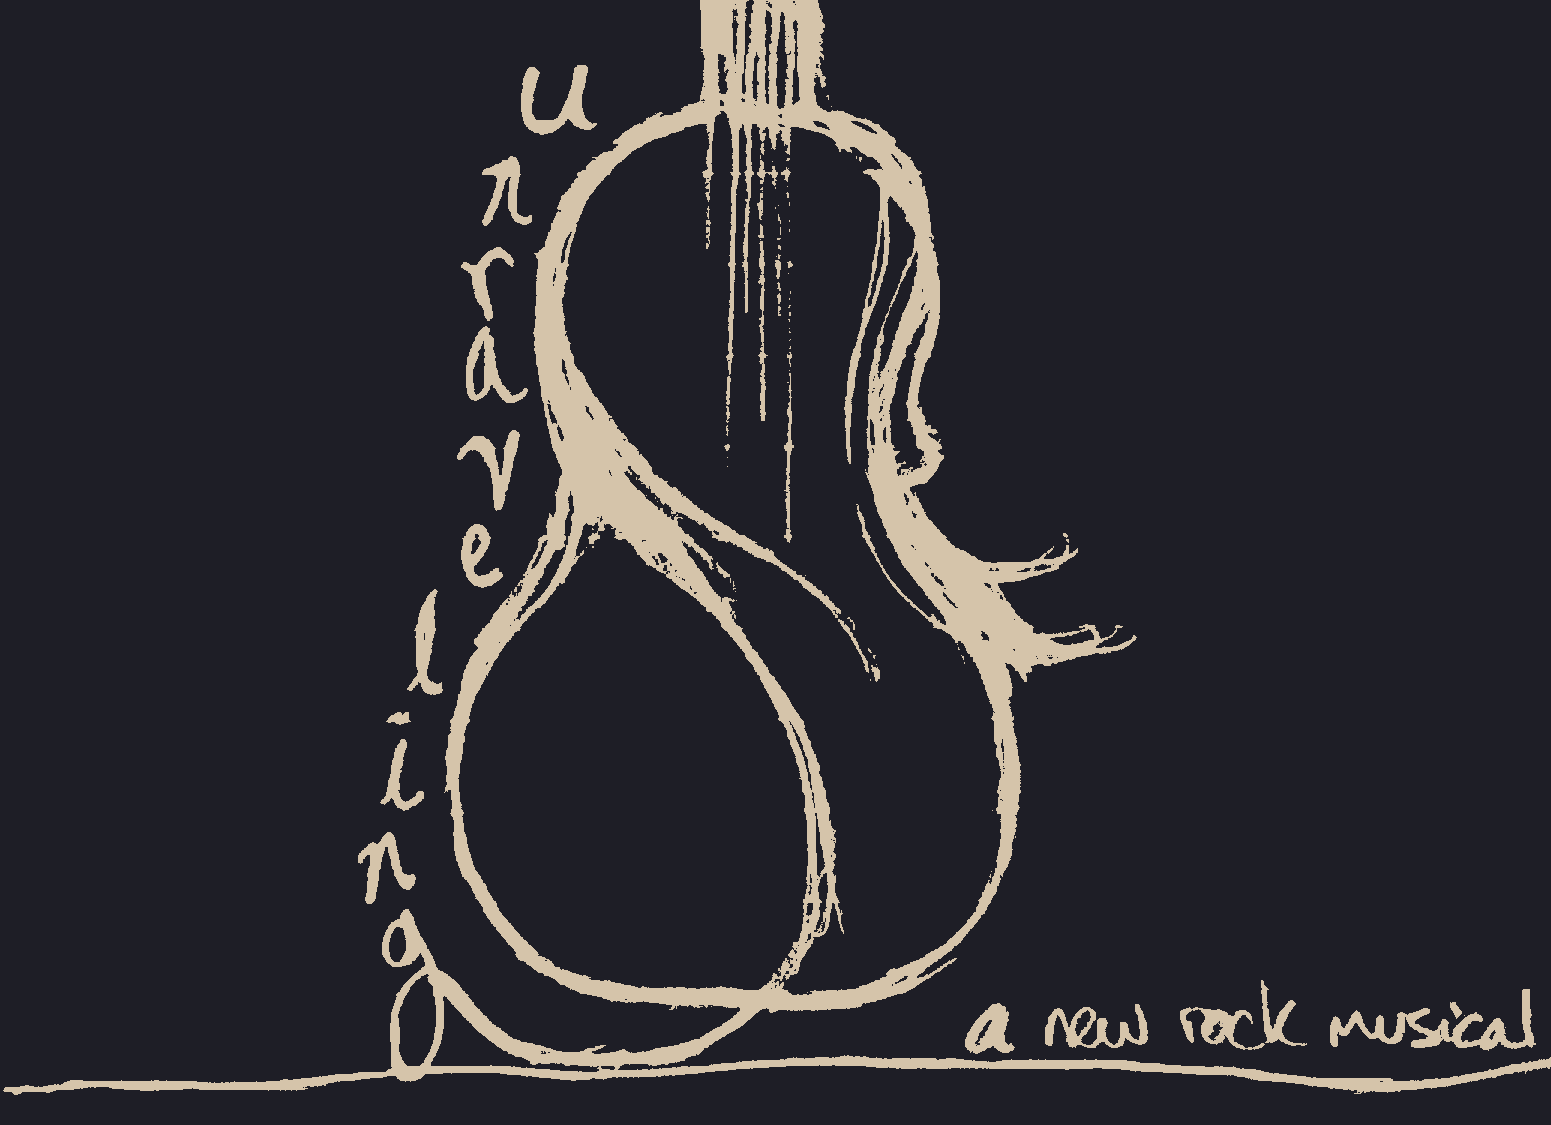 unraveling: a new rock musical